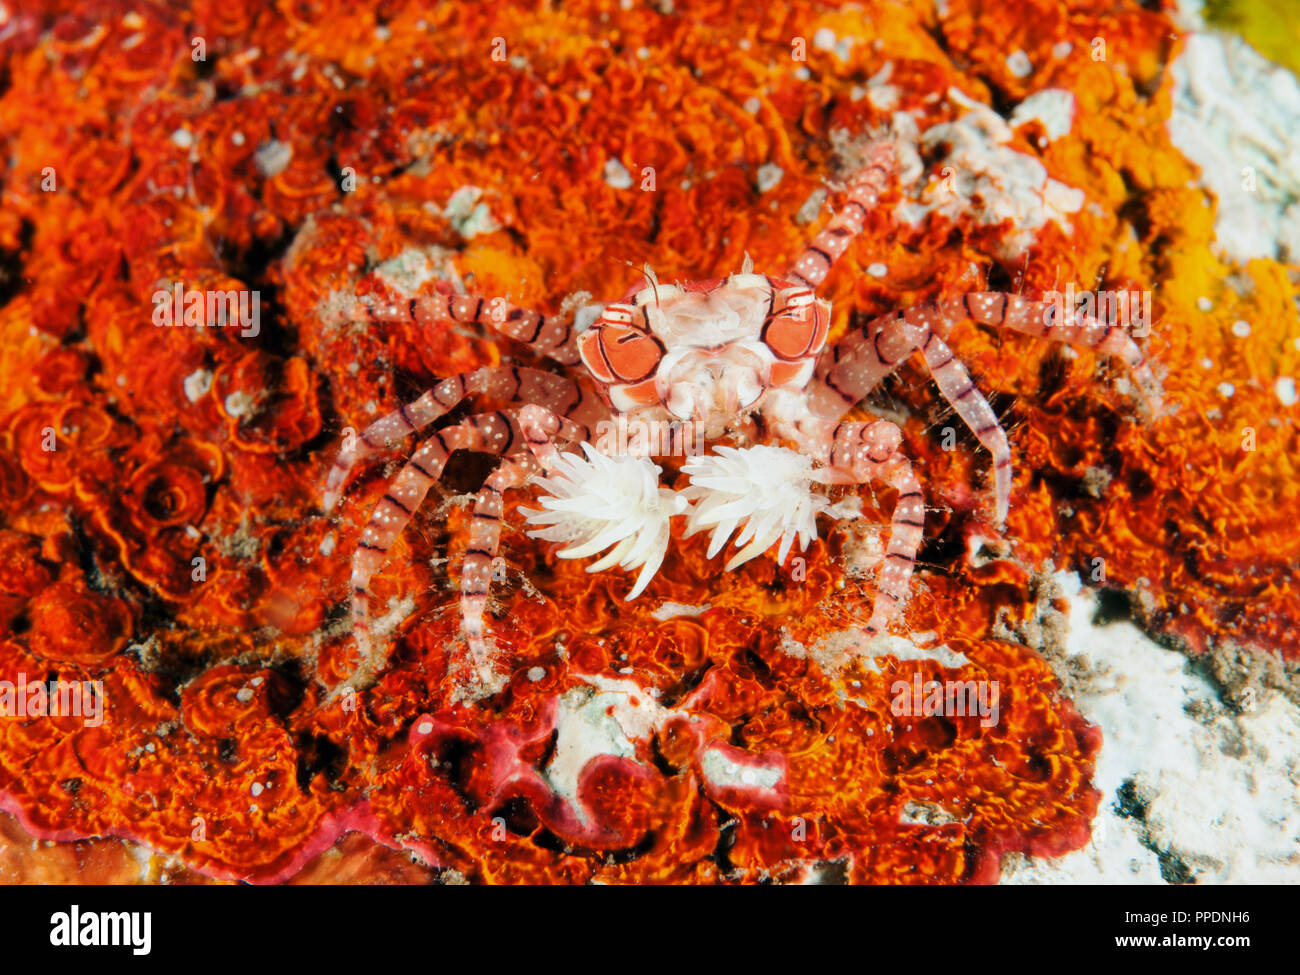 Boxer crab, Lybia tesselata, with defensive anemones attached her arms. Bali Indonesia. - Stock Image